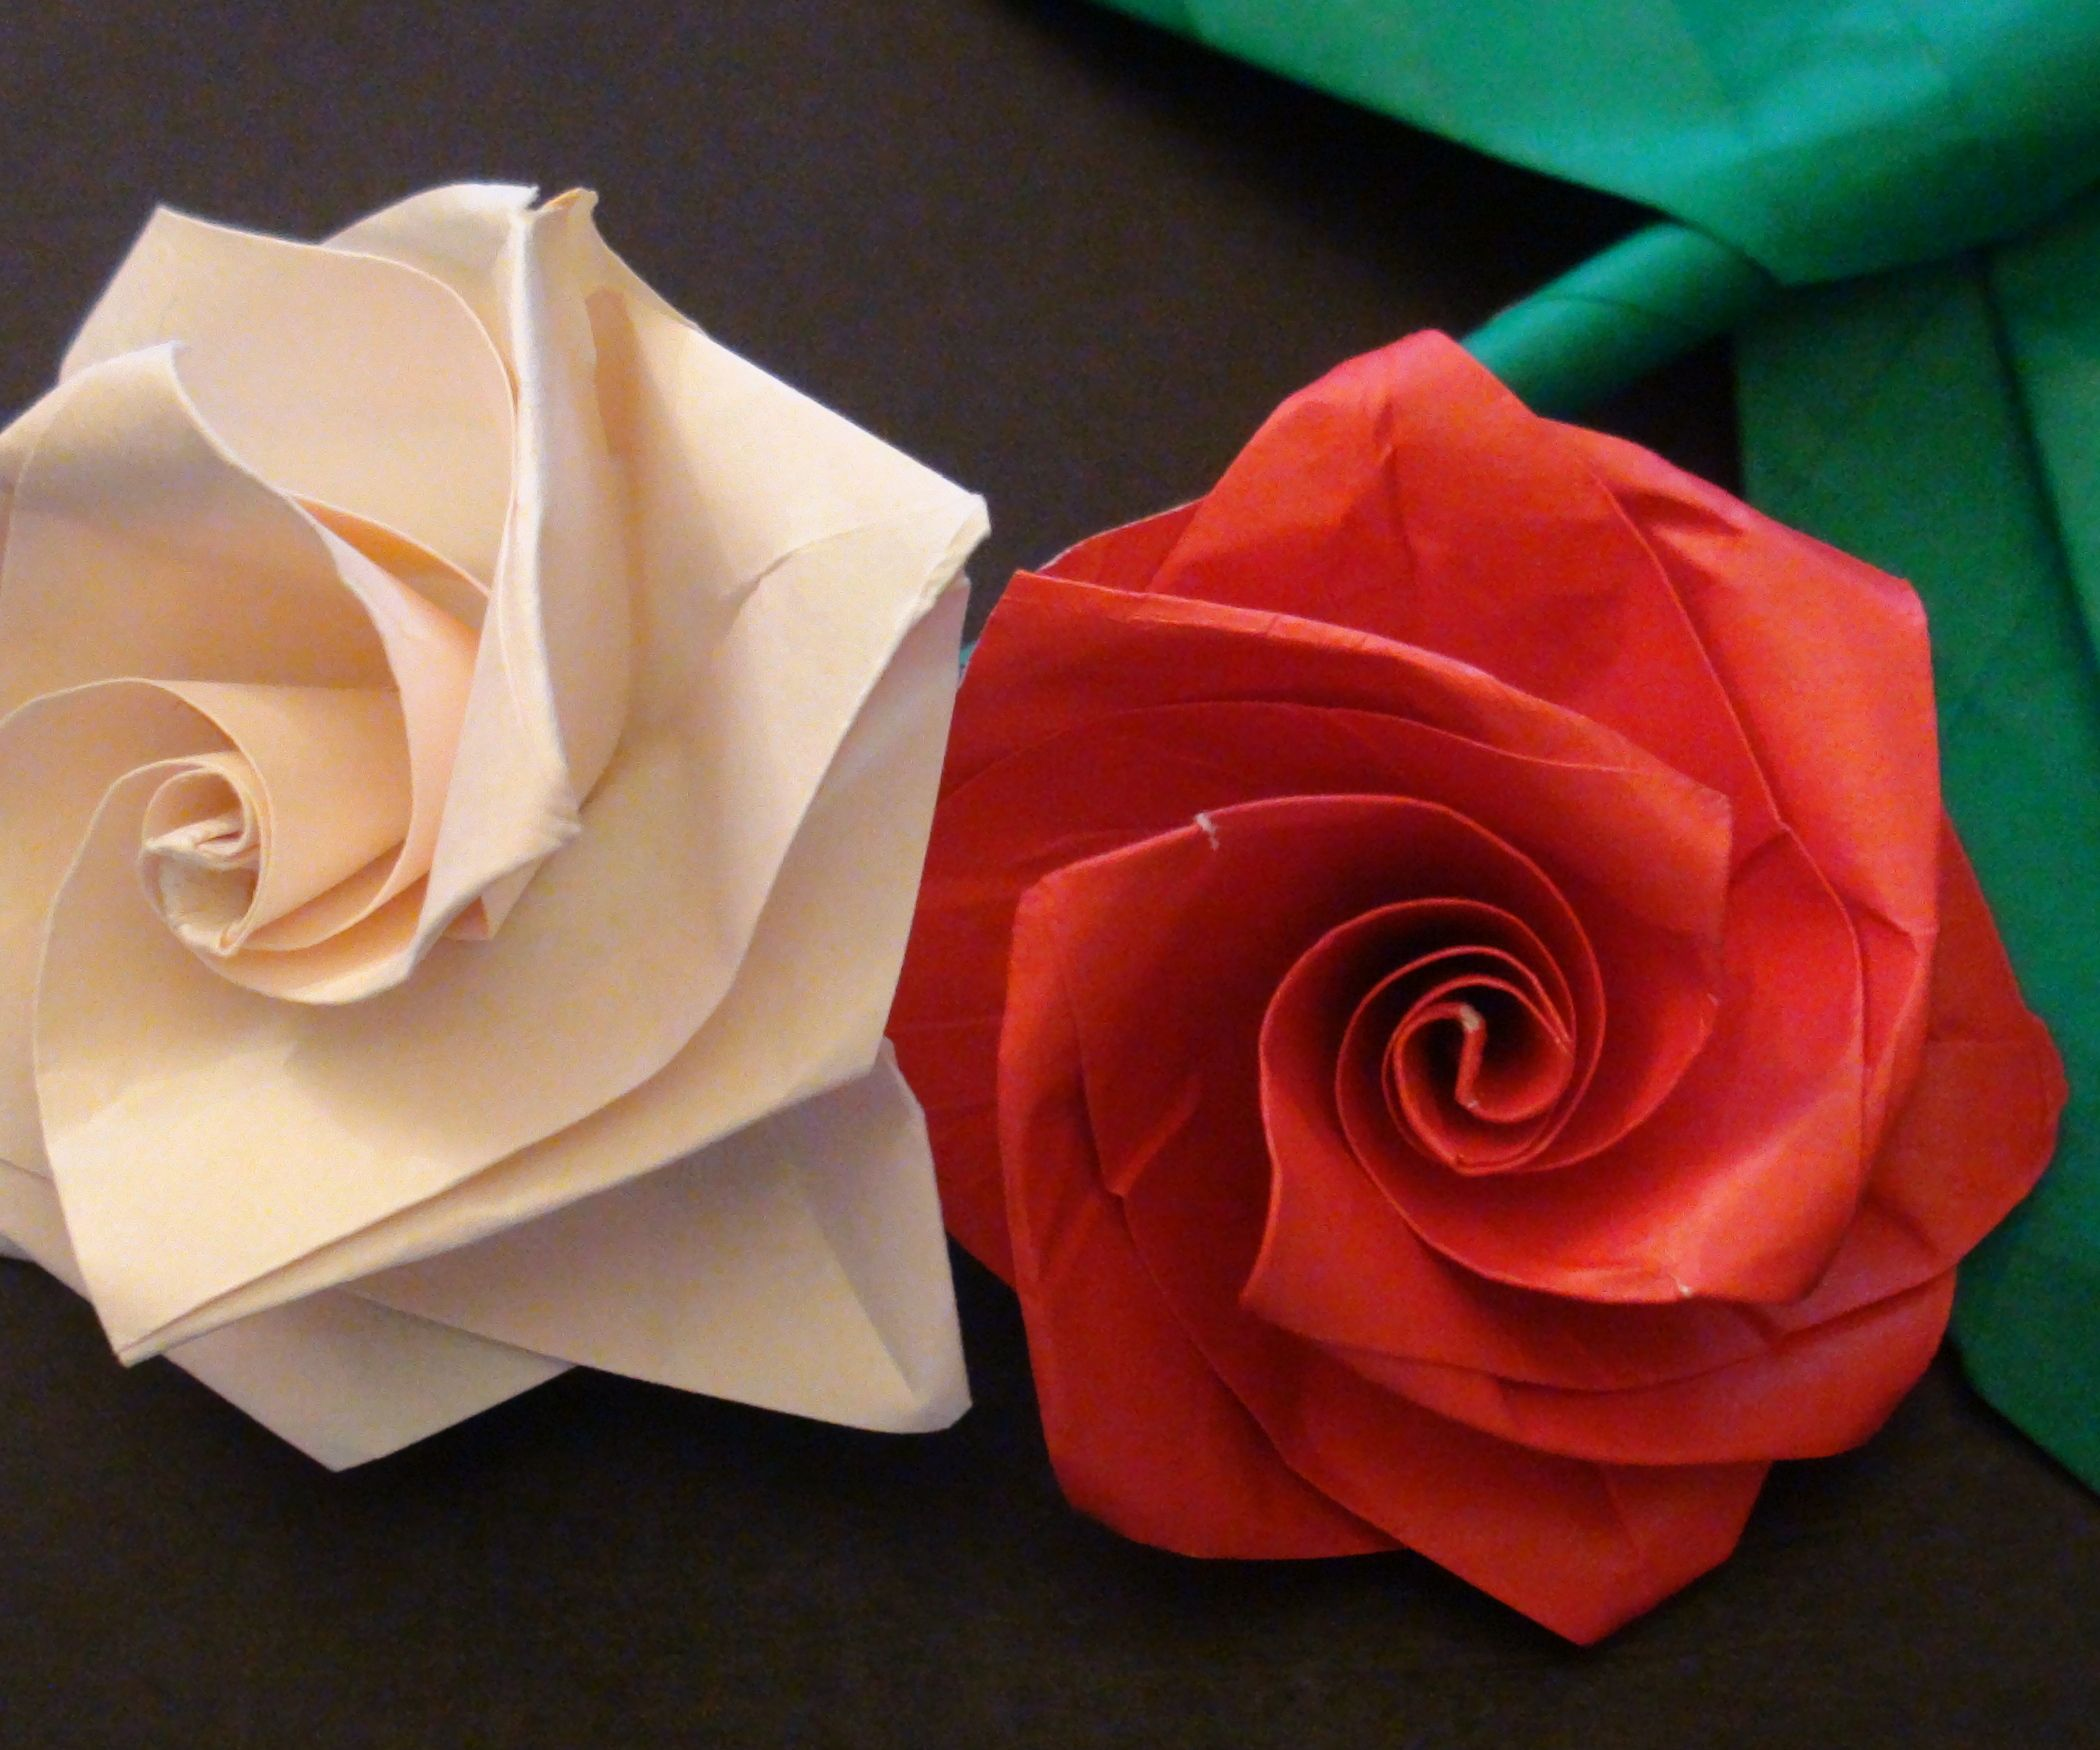 How to make an easy origami rose bouquet easy origami origami how to make an easy origami rose bouquet mightylinksfo Gallery